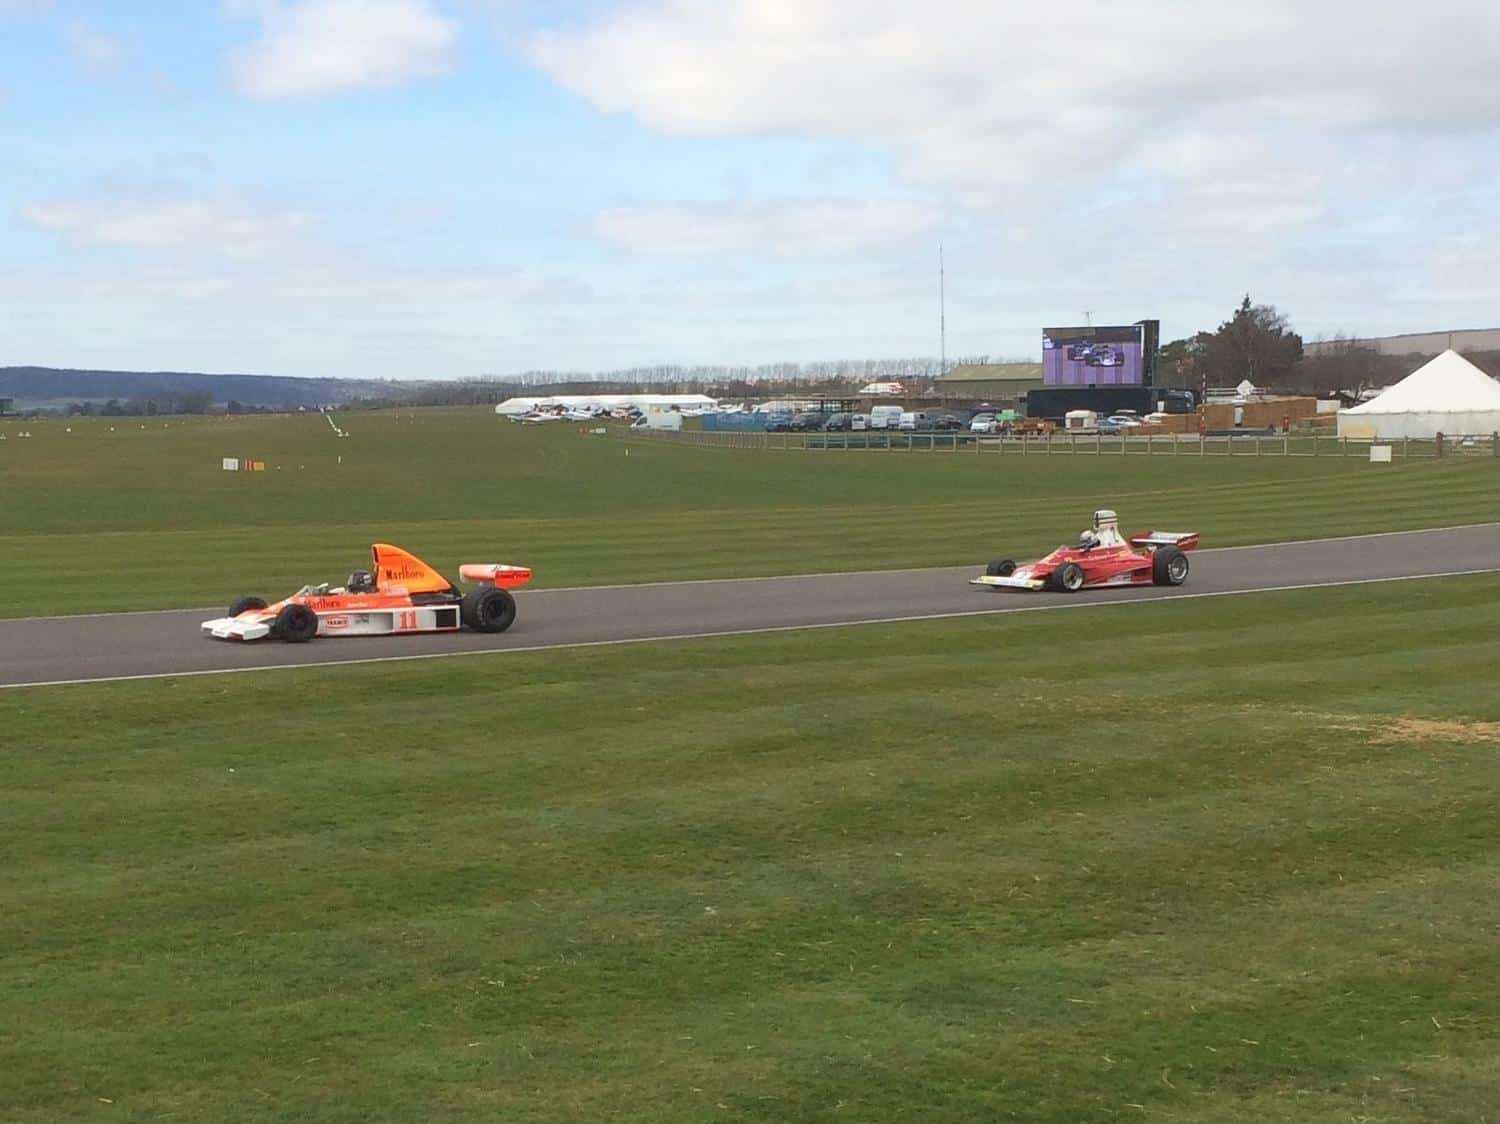 It's 1976 all over again! A McLaren M23 leads a Ferrari 312T in a demonstration run at the 73rd Goodwood Members' Meeting